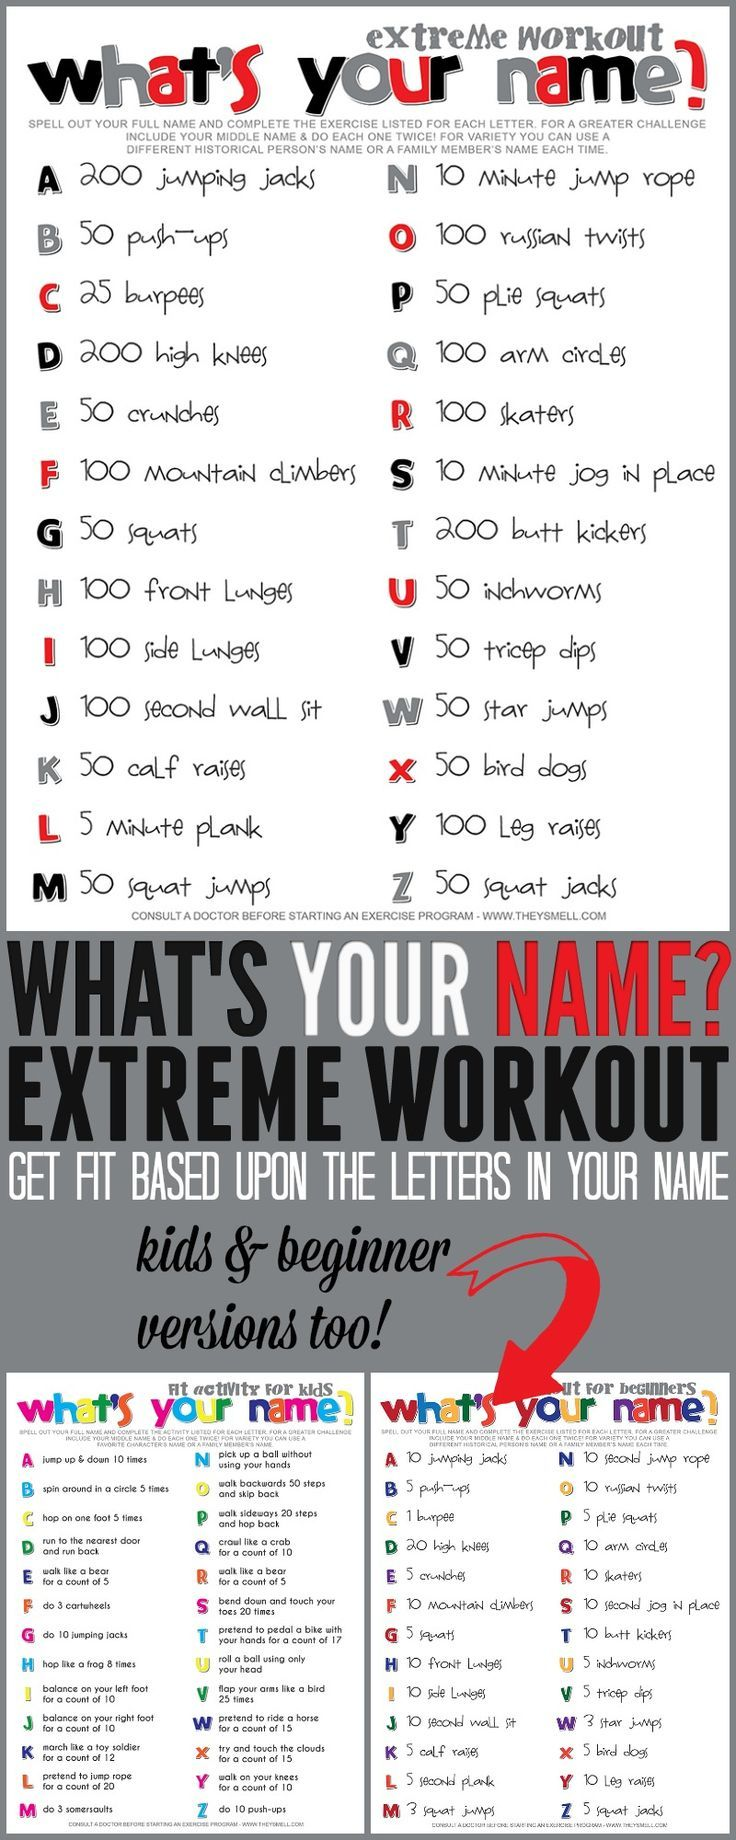 What's your name? extreme workout. Challenge yourself with this extreme yet fun workout that will push your fitness to the limit! Every workout is different! Follow it based upon your own name, a friend's name, or your favorite celebrity's name. Change it